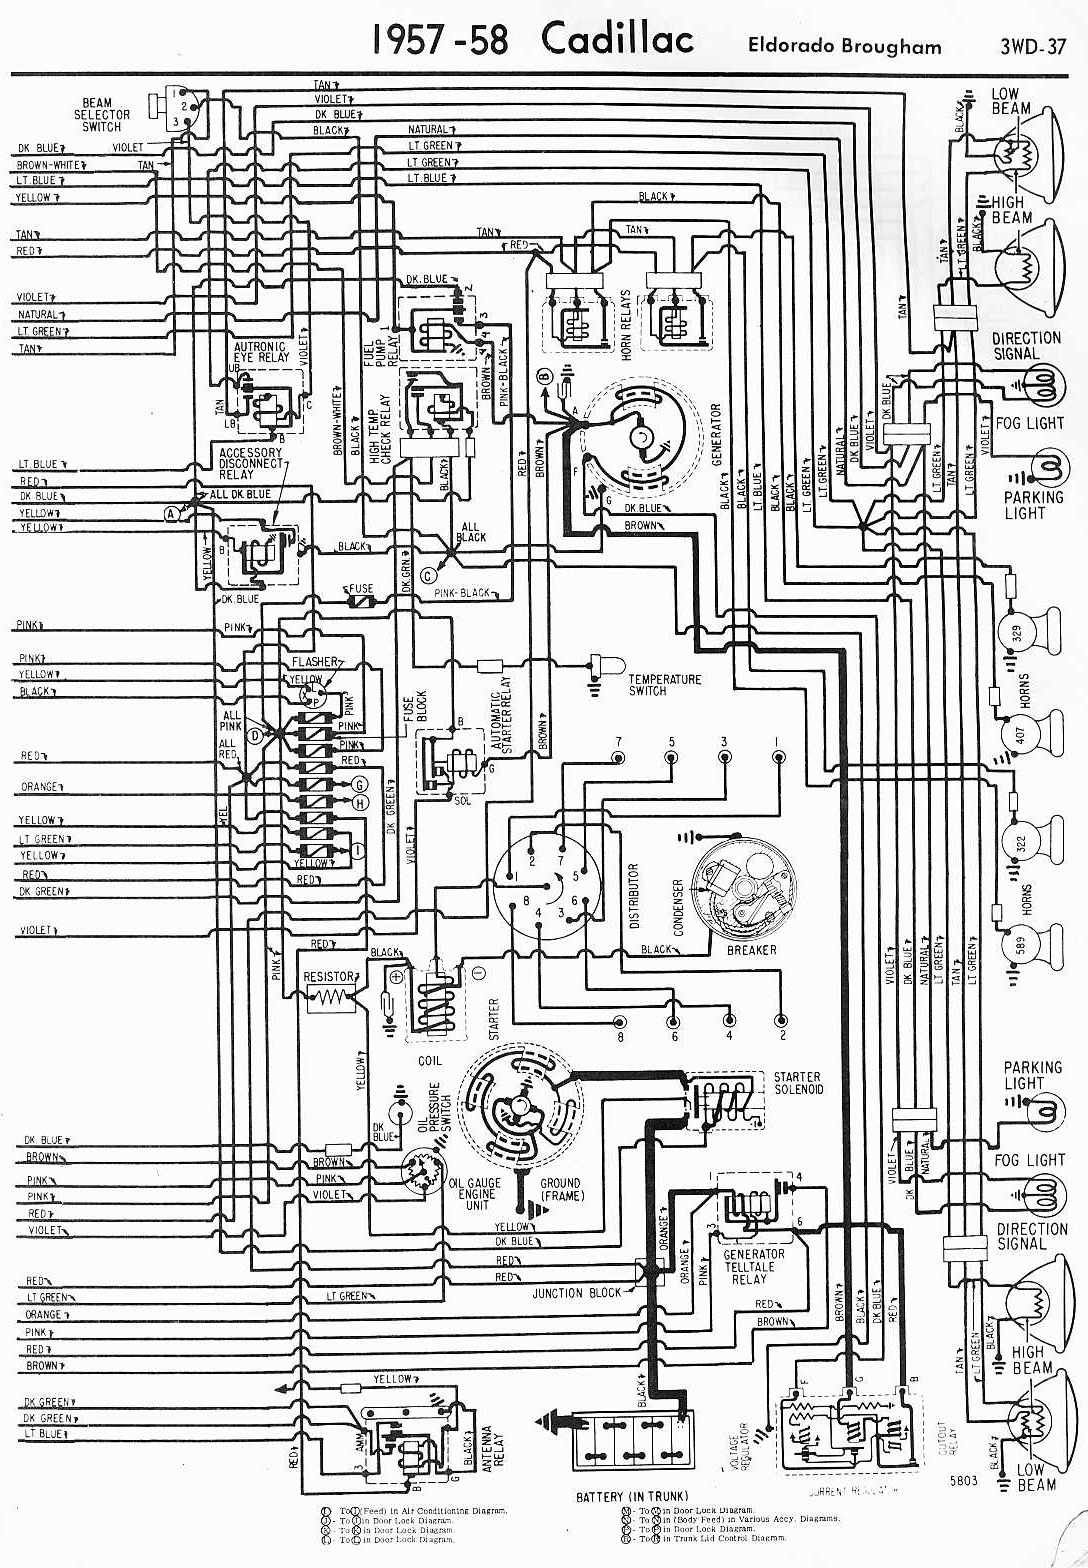 Cadillac Limousine Wiring Diagram Schematic Diagrams For A Lincoln Source U2022 Cts